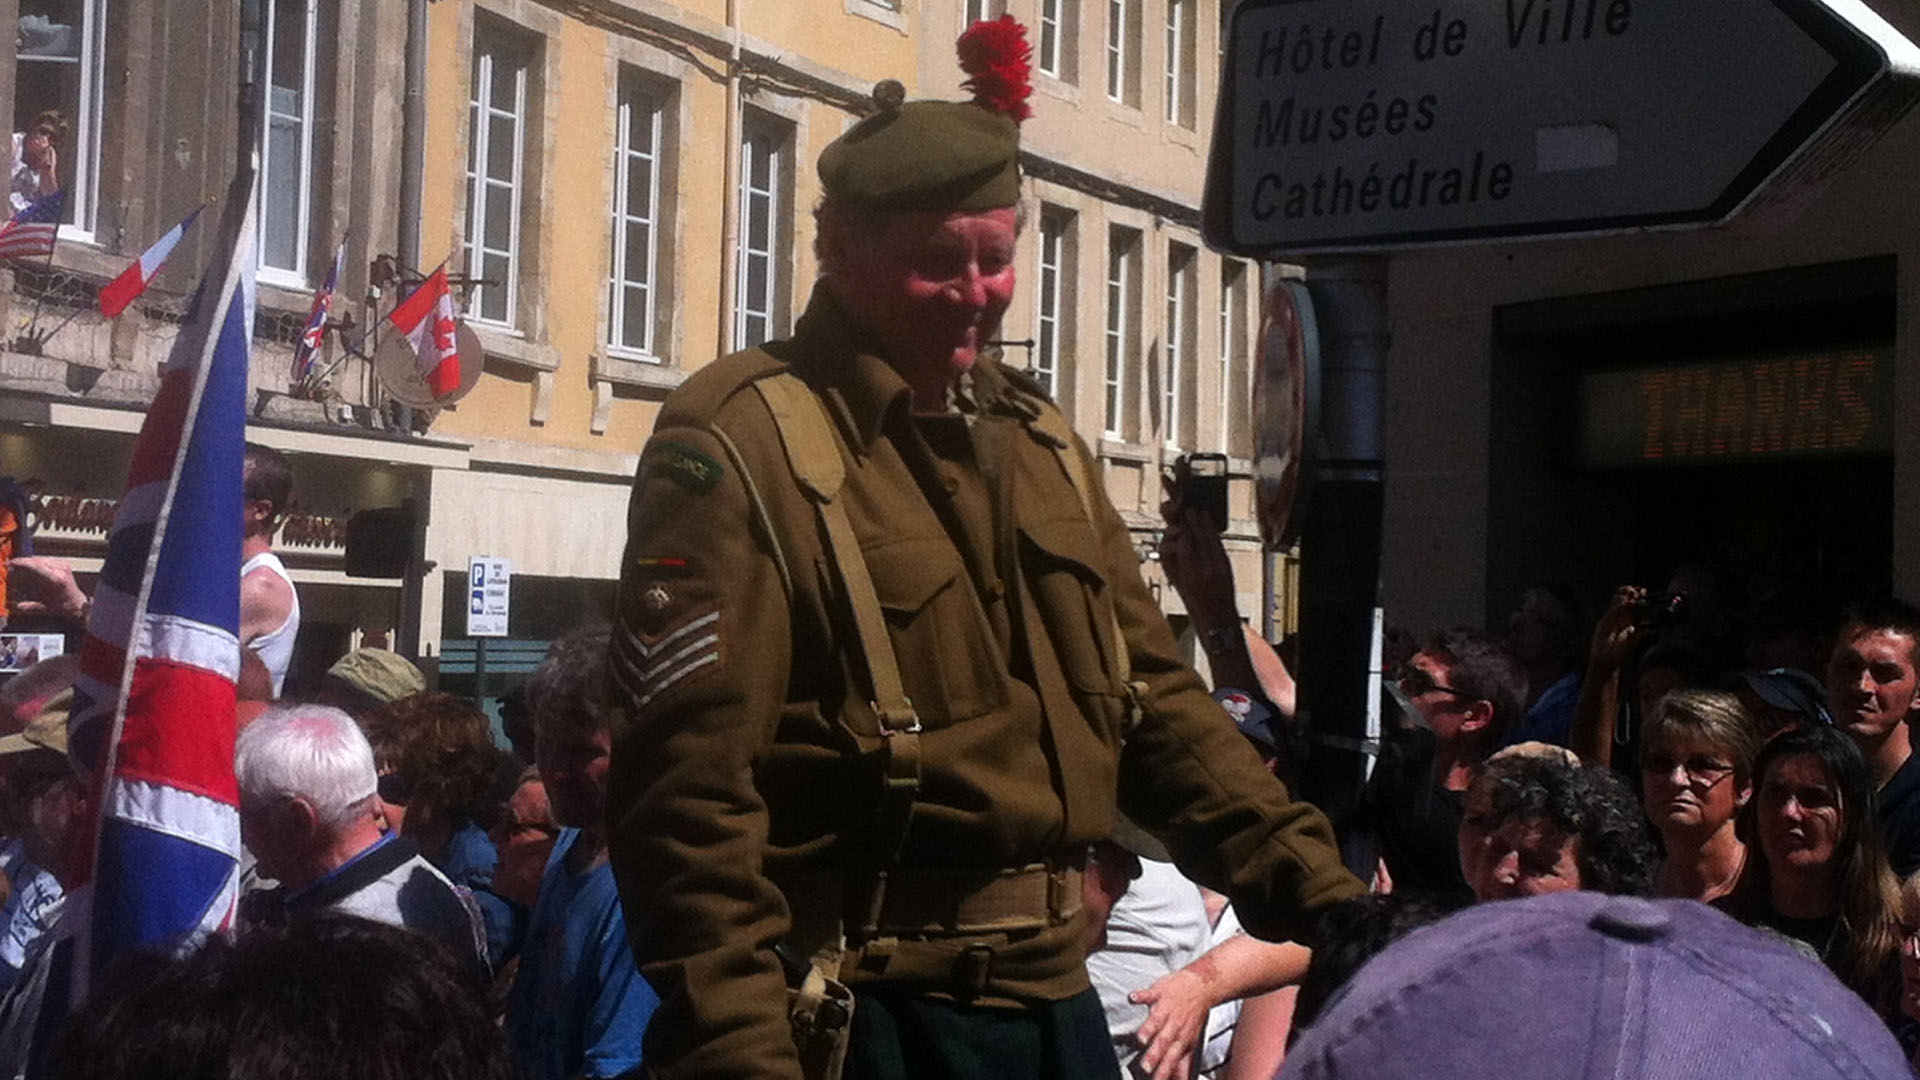 Historical re-enactors in Bayeux